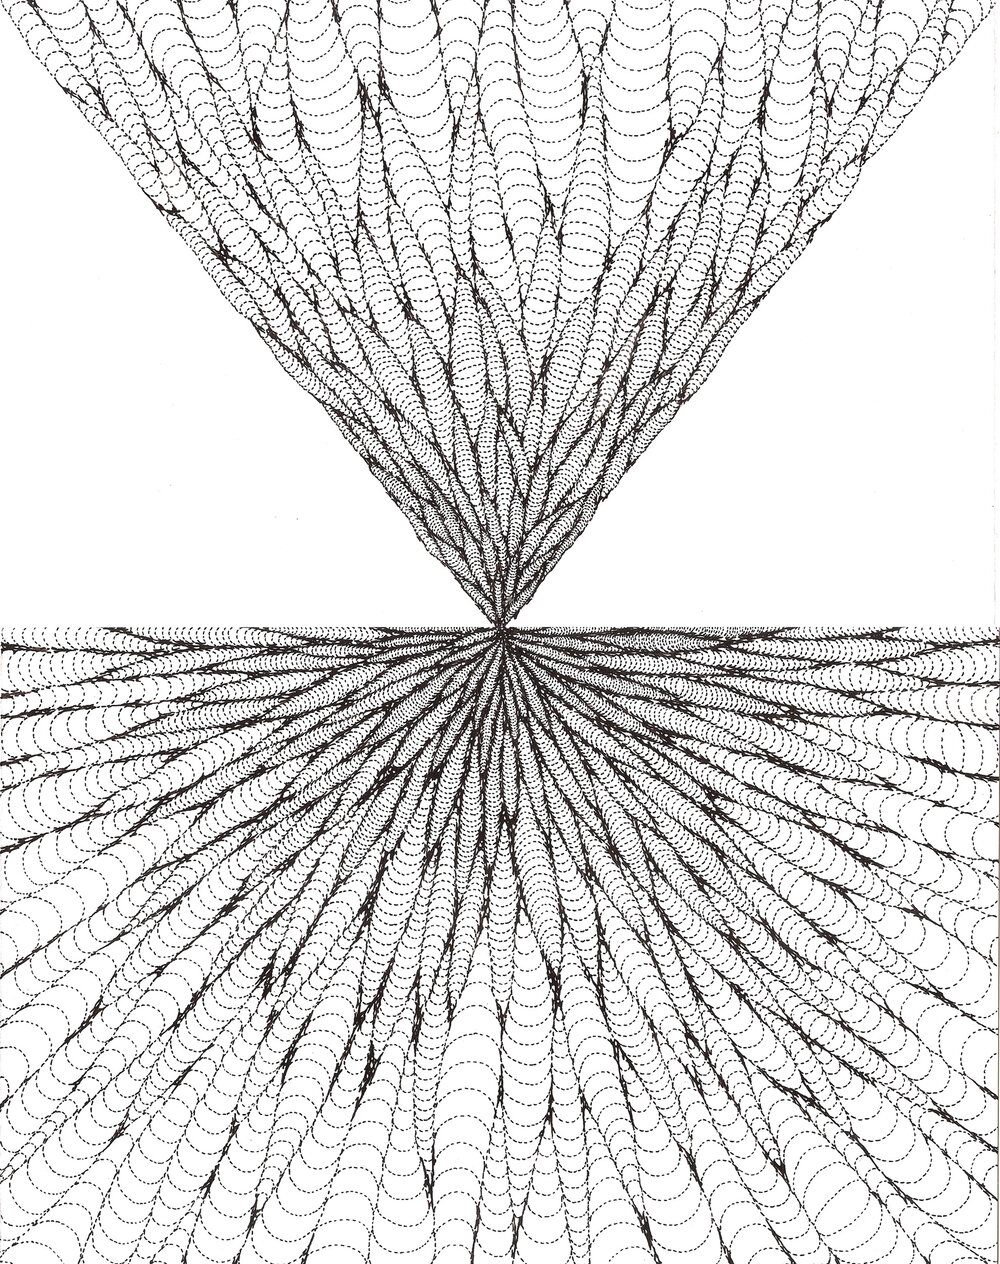 Convergence, ink on paper, 14x11 in., 2012